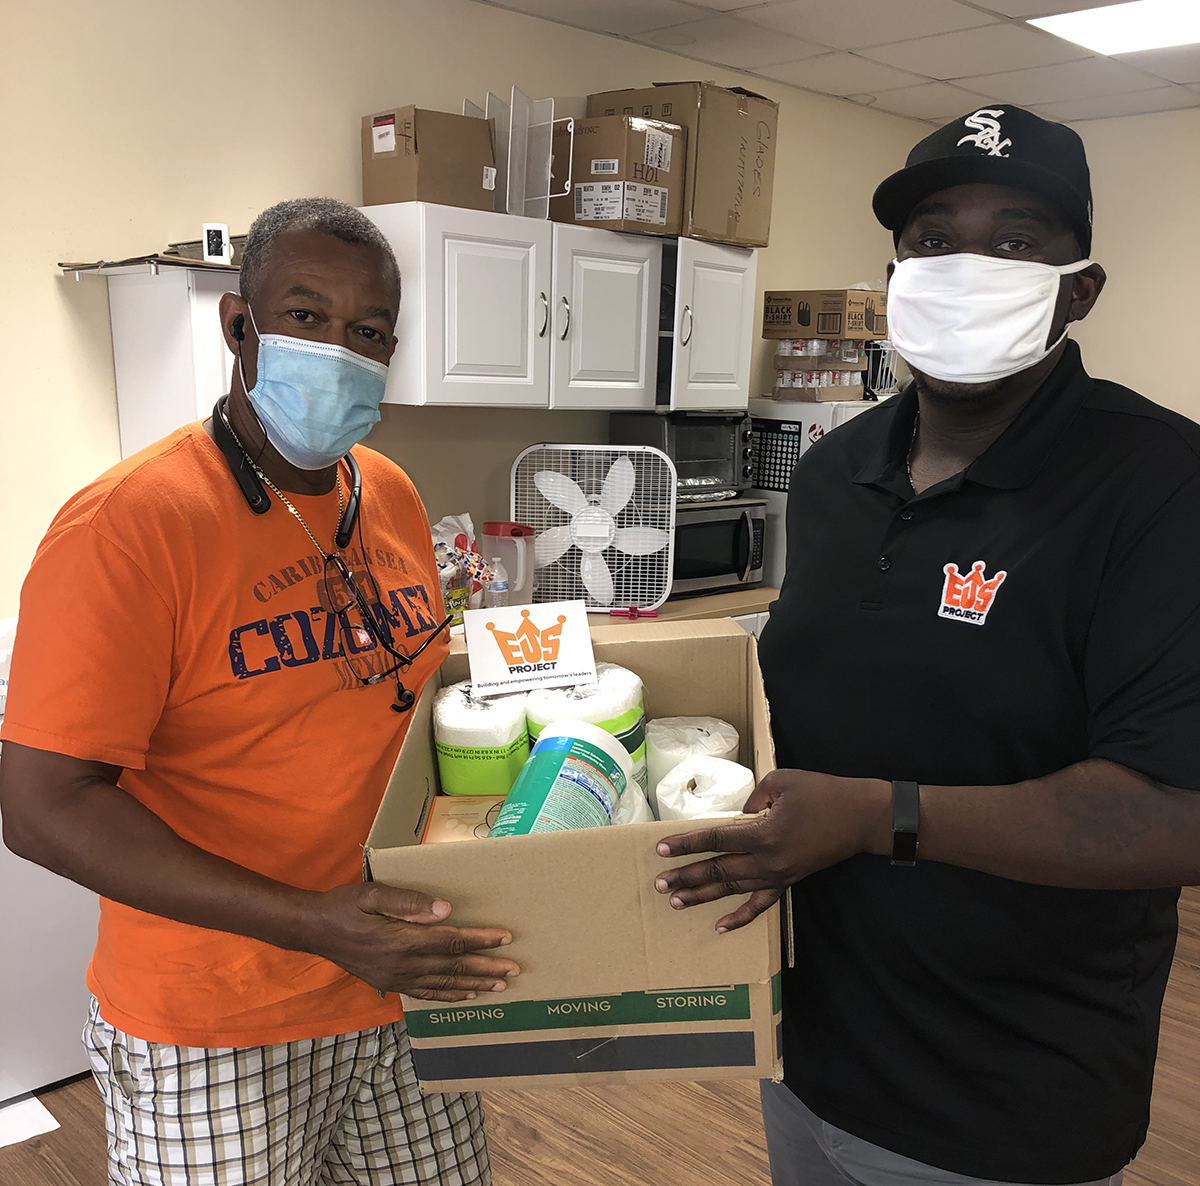 Palm Health Foundation Leads Collaboration to Provide Relief to Boynton Beach Family in Crisis During COVID-19 Pandemic